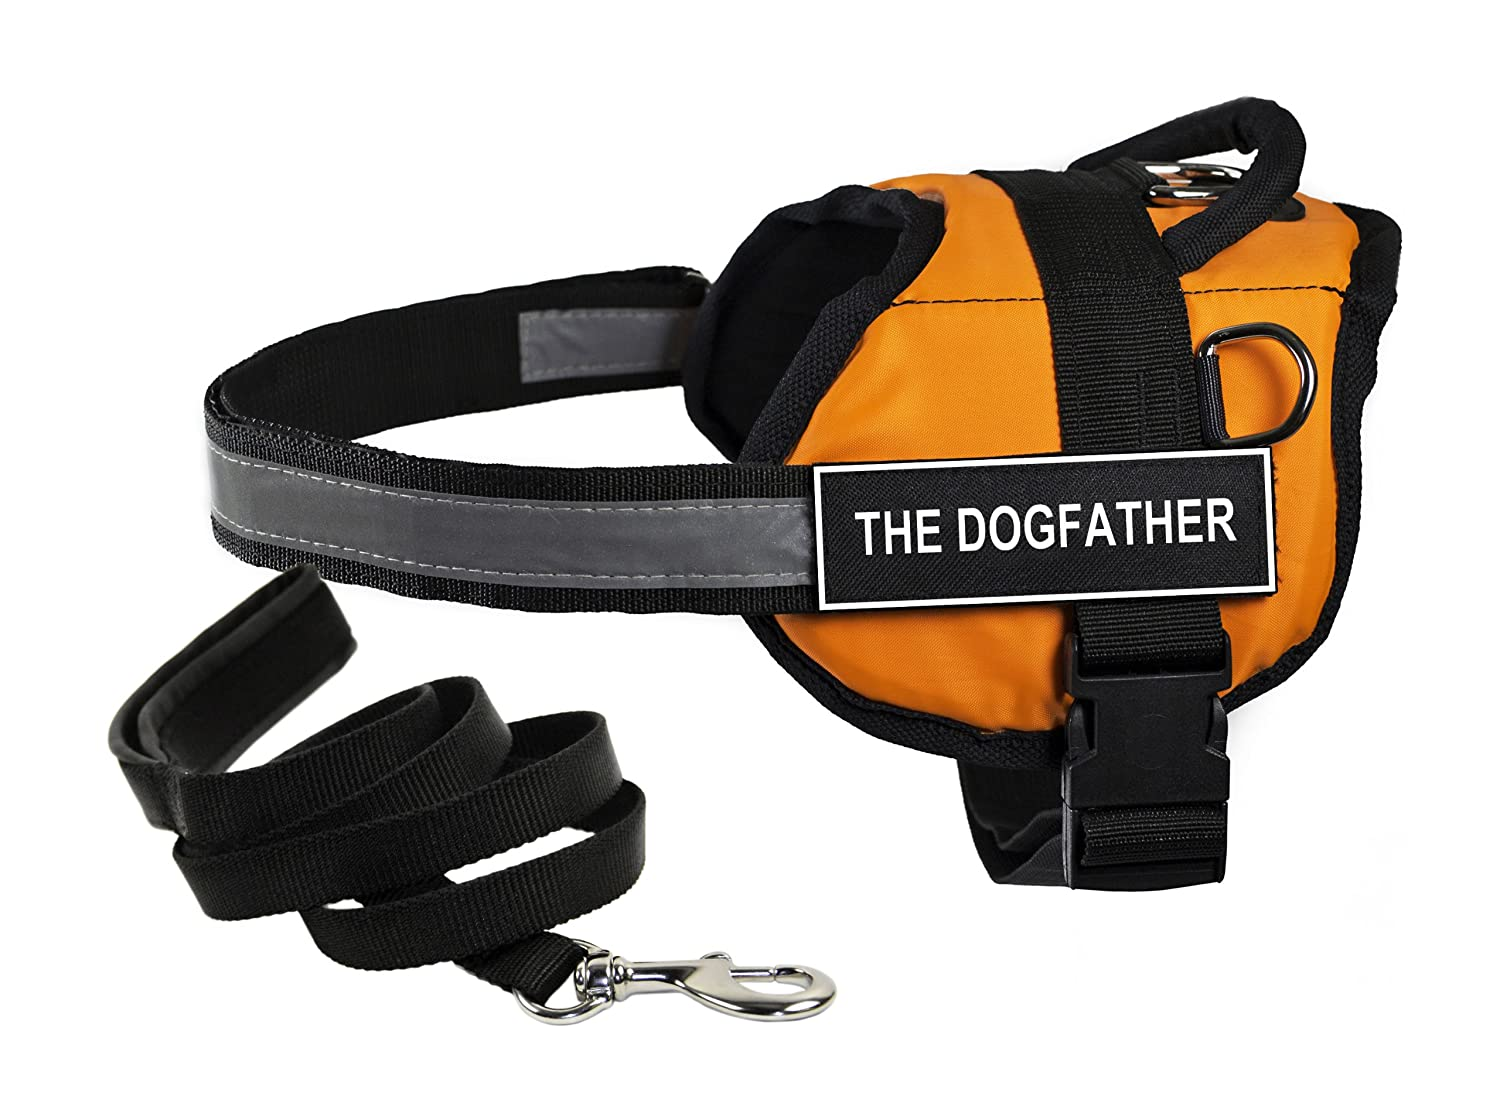 Dean & Tyler DT Works arancia The Dogfather Torace Imbracatura con Imbottitura, XS, e Nero 1,8 m Padded Puppy guinzaglio.